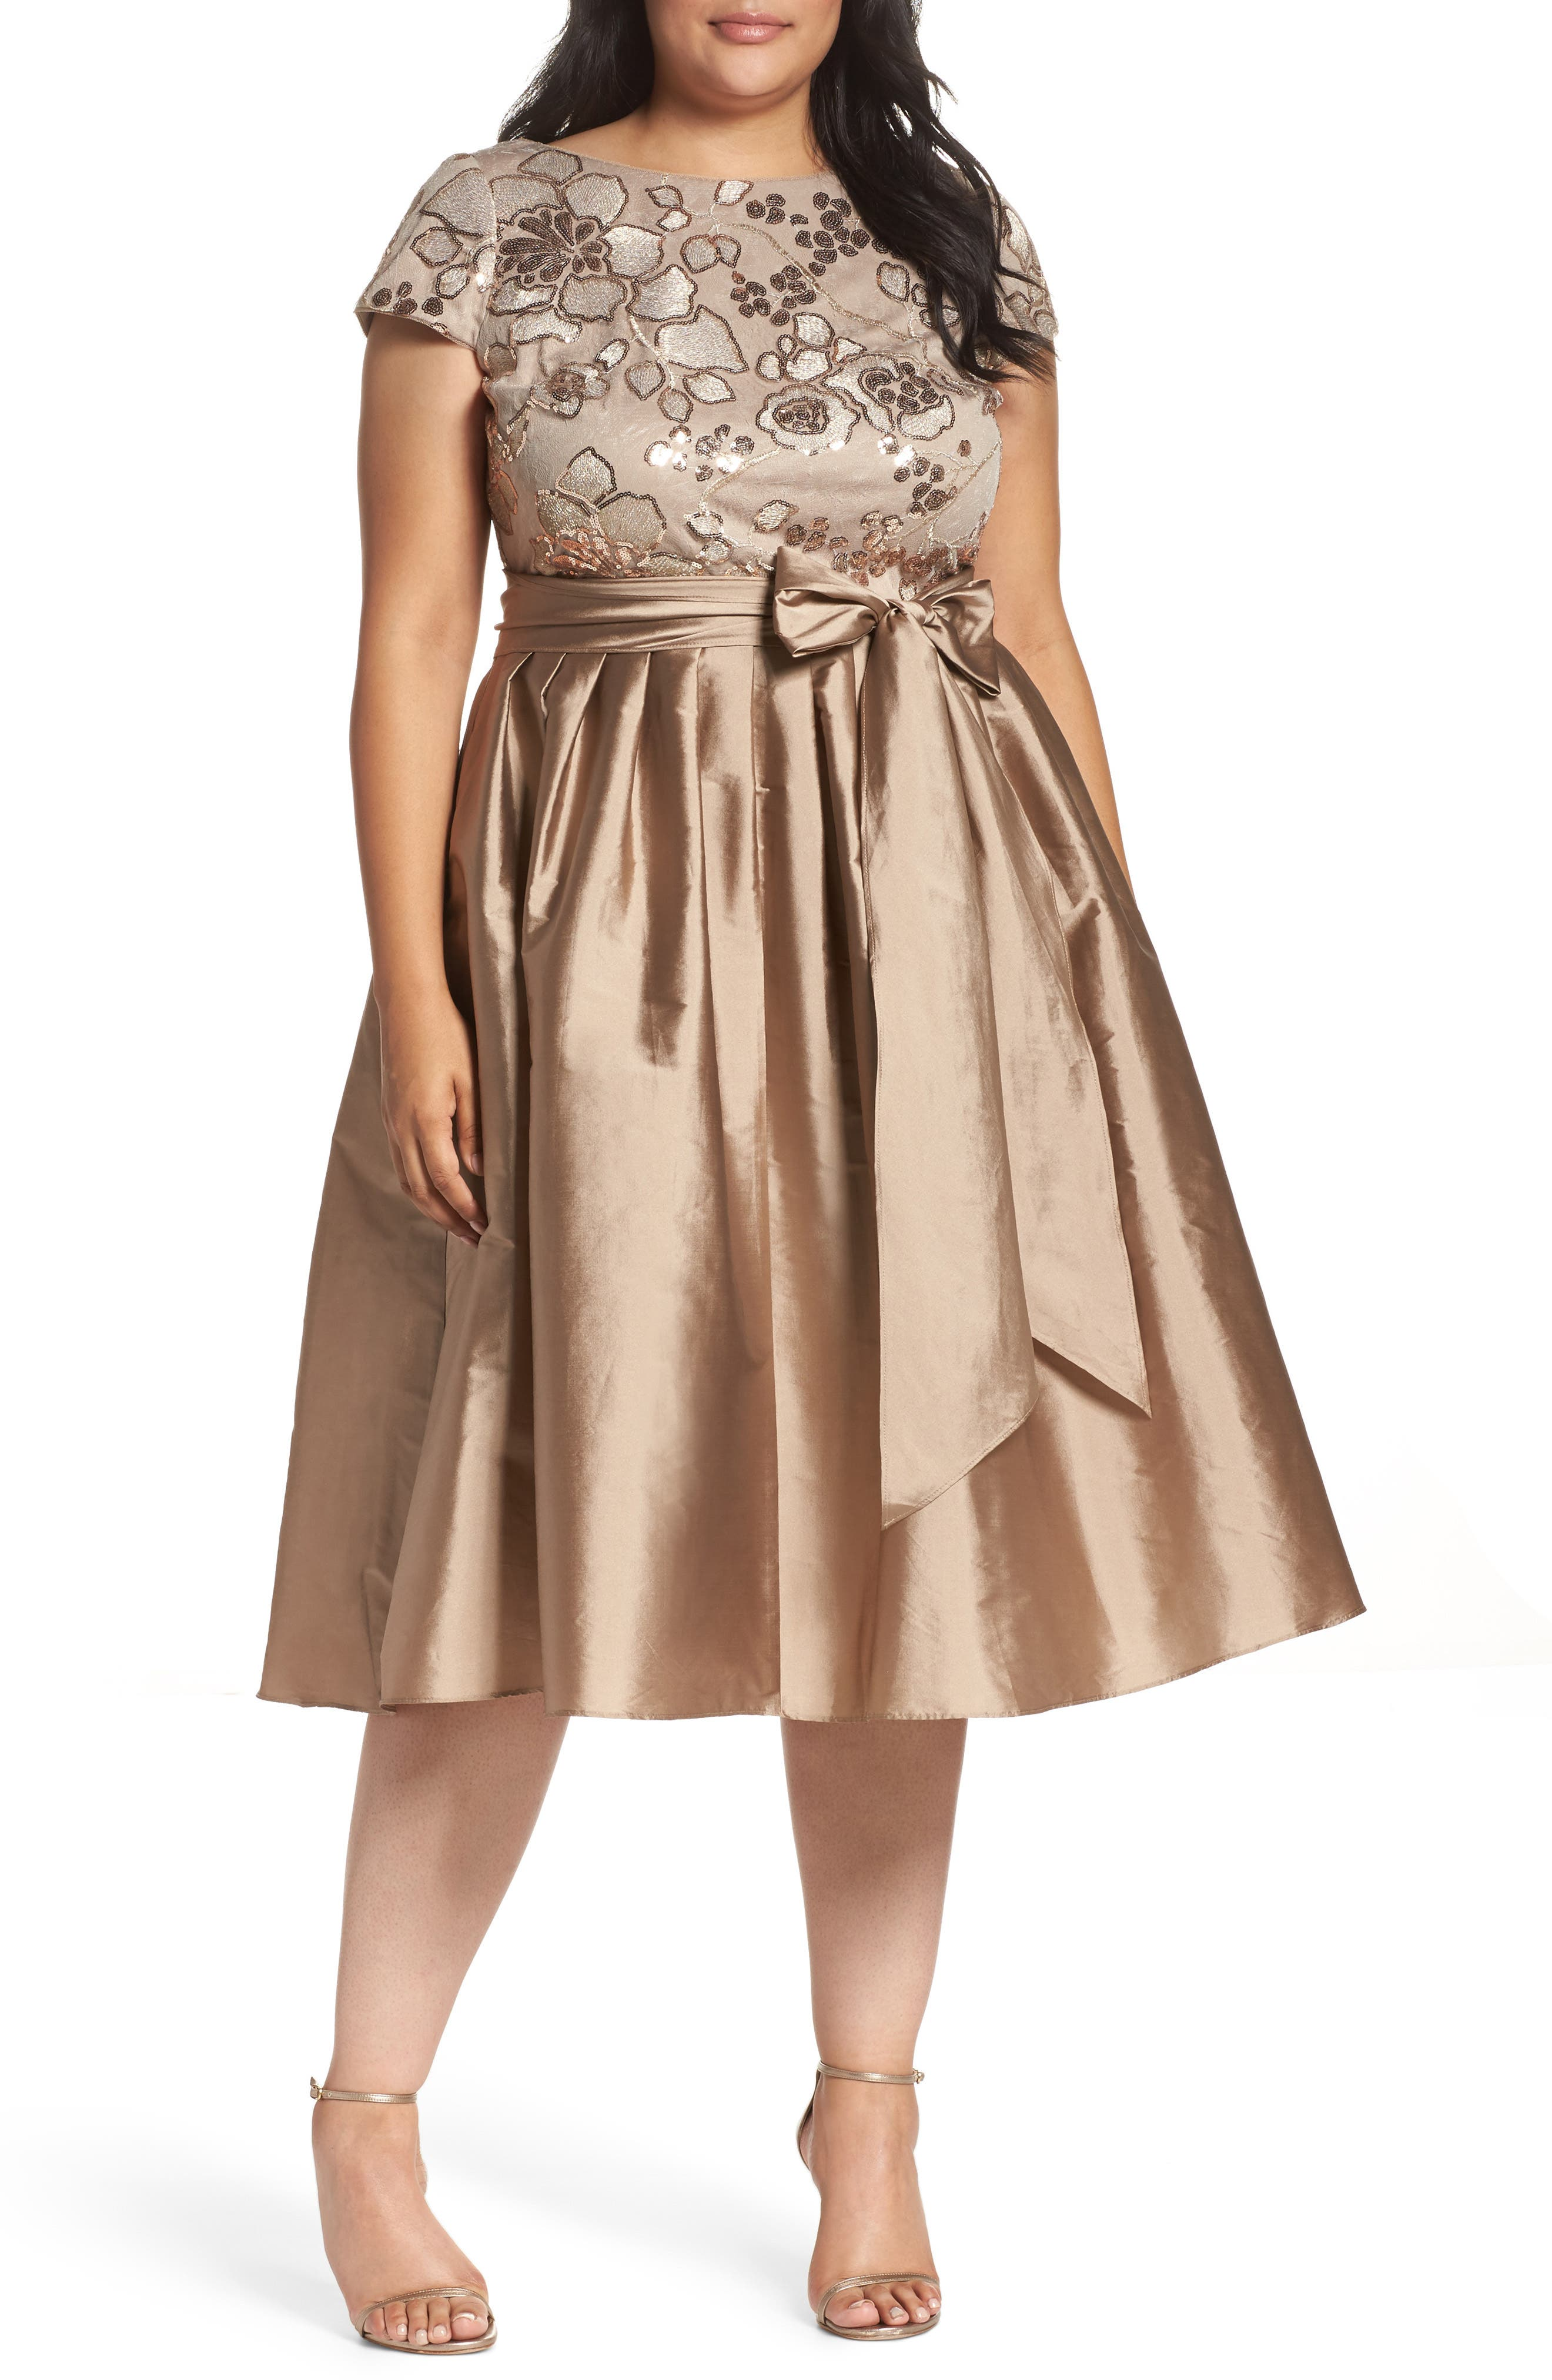 Main Image - Adrianna Papell Embellished Bodice Party Dress (Plus Size)